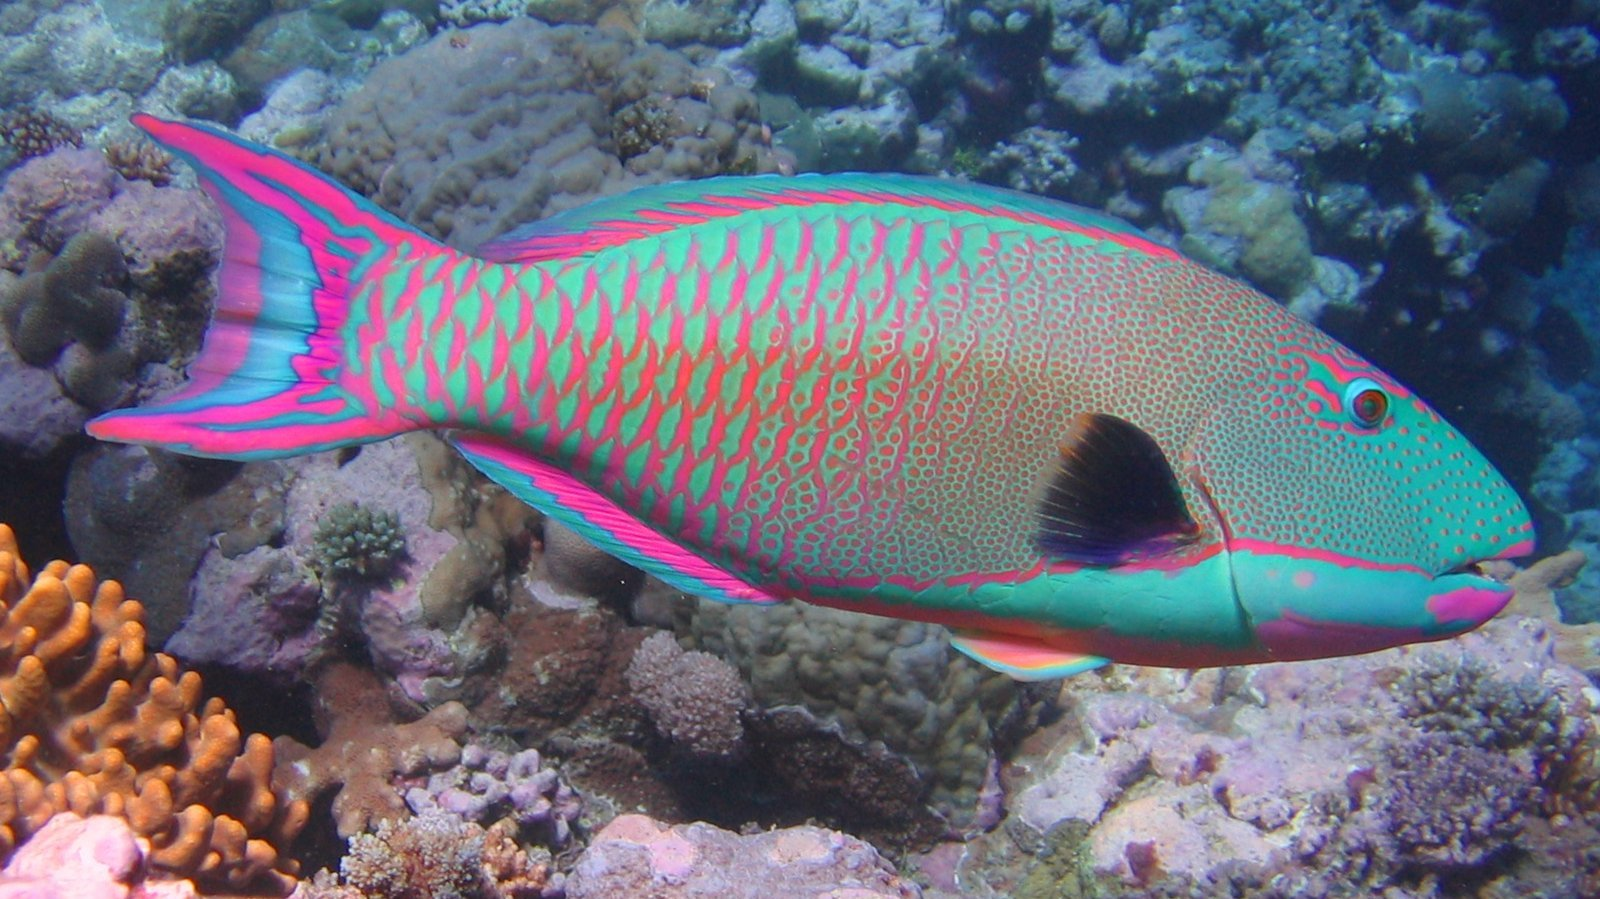 The parrotfish inspired Chana Weinberg's initial designs. Photo: courtesy